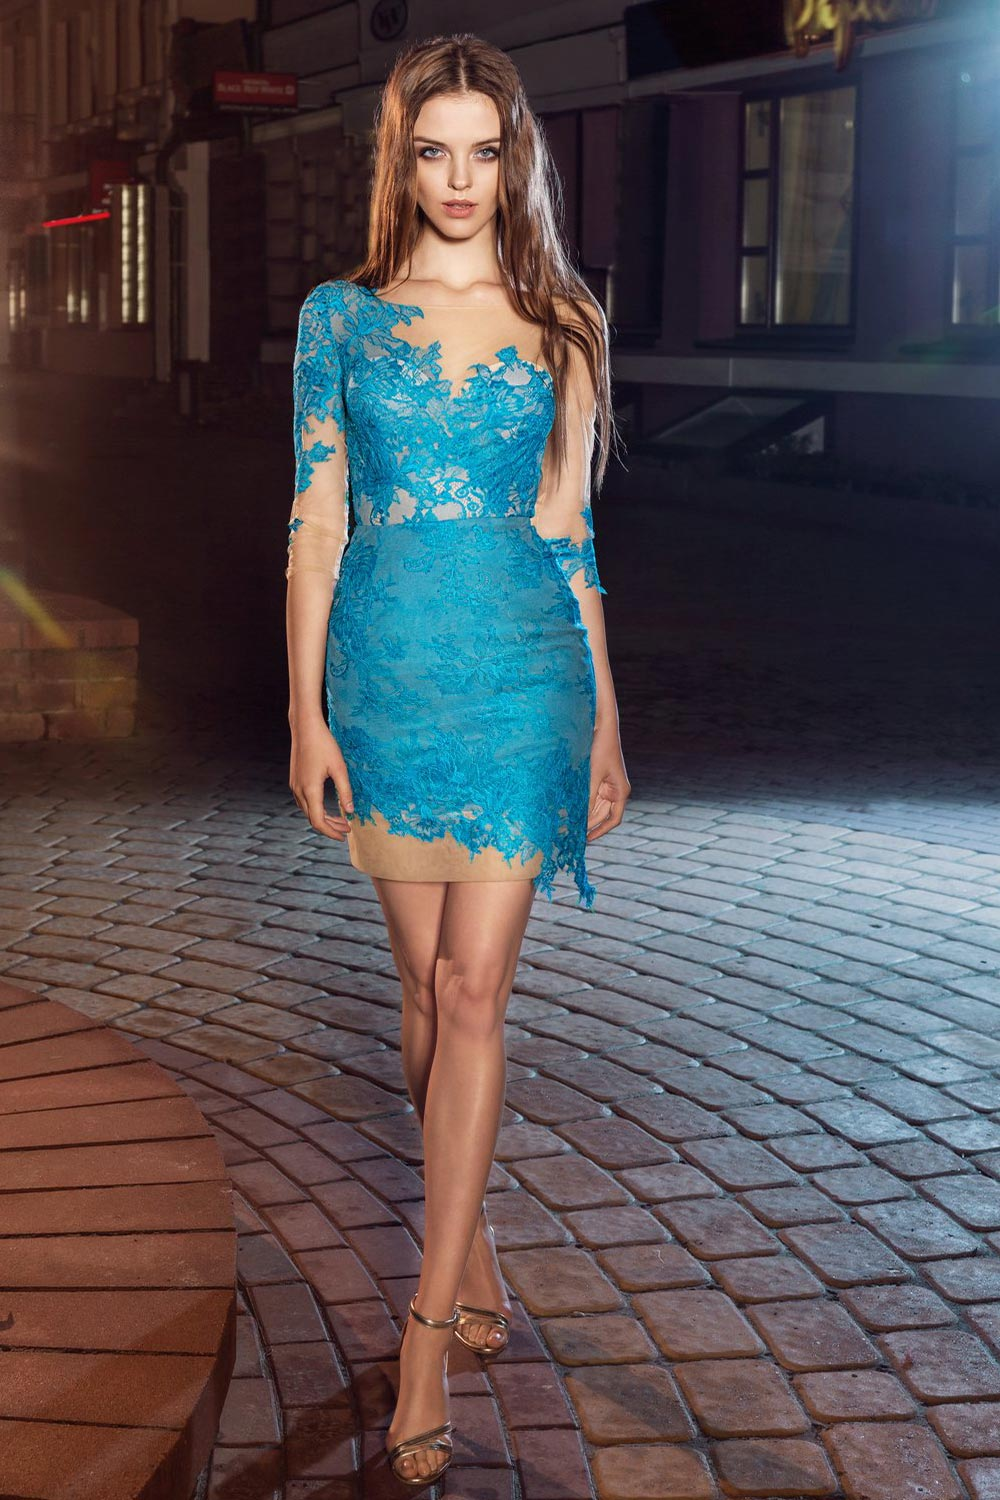 Style #207, short fitted lace dress with illusion 3/4 sleeves, available in pink-ivory, ivory, black, cool blue